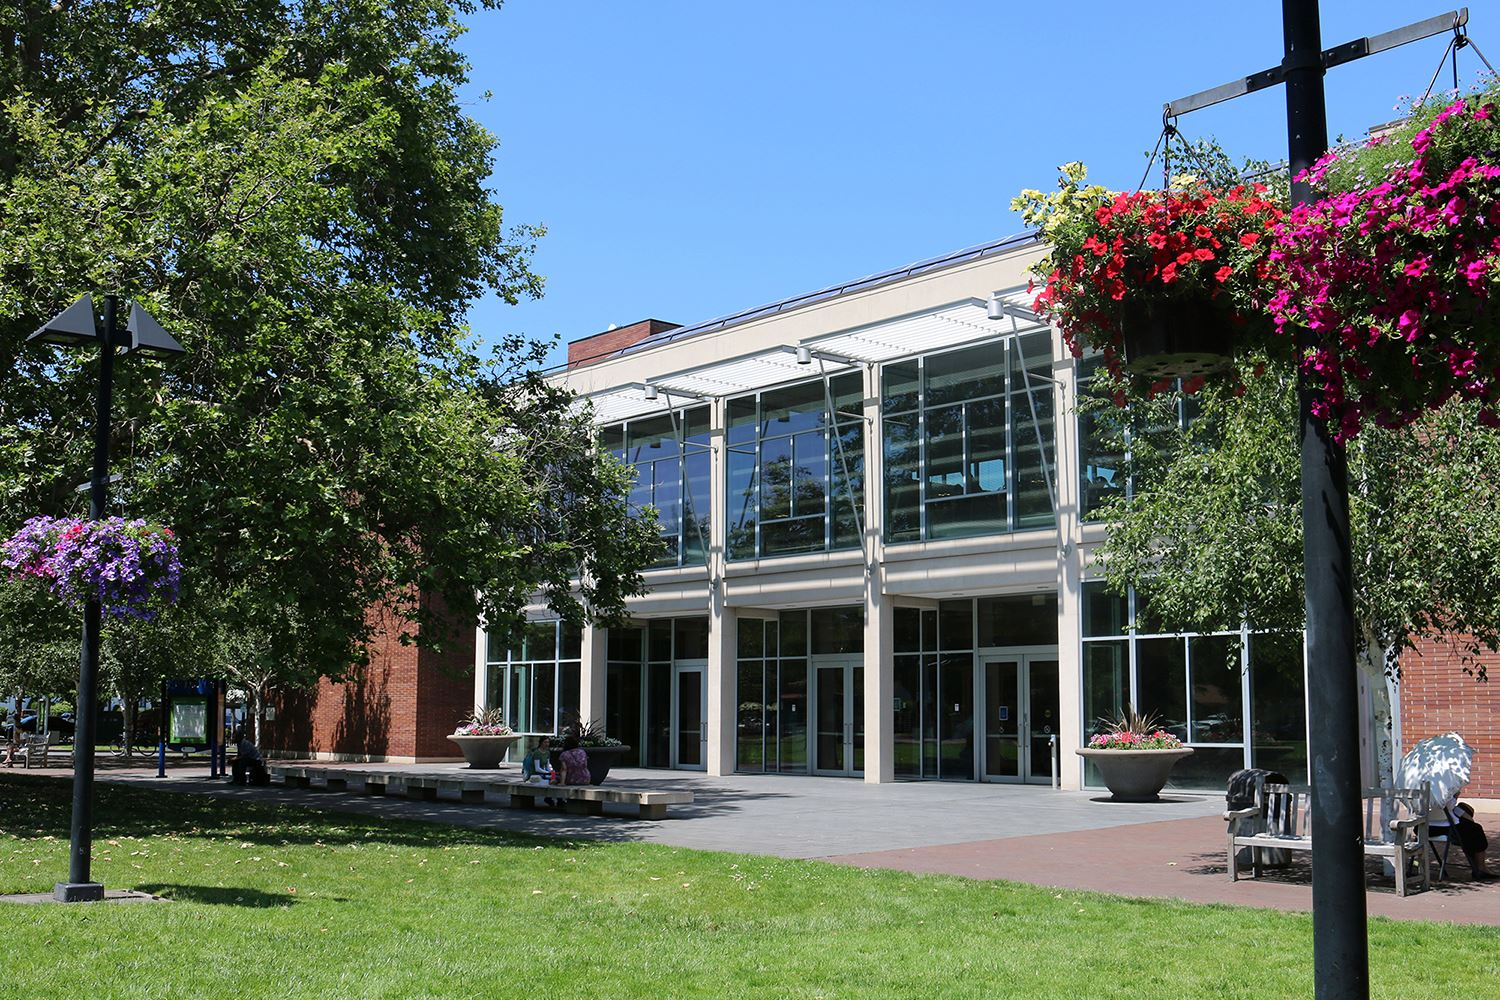 Photo of a library building with trees and flowers and a blue sky.